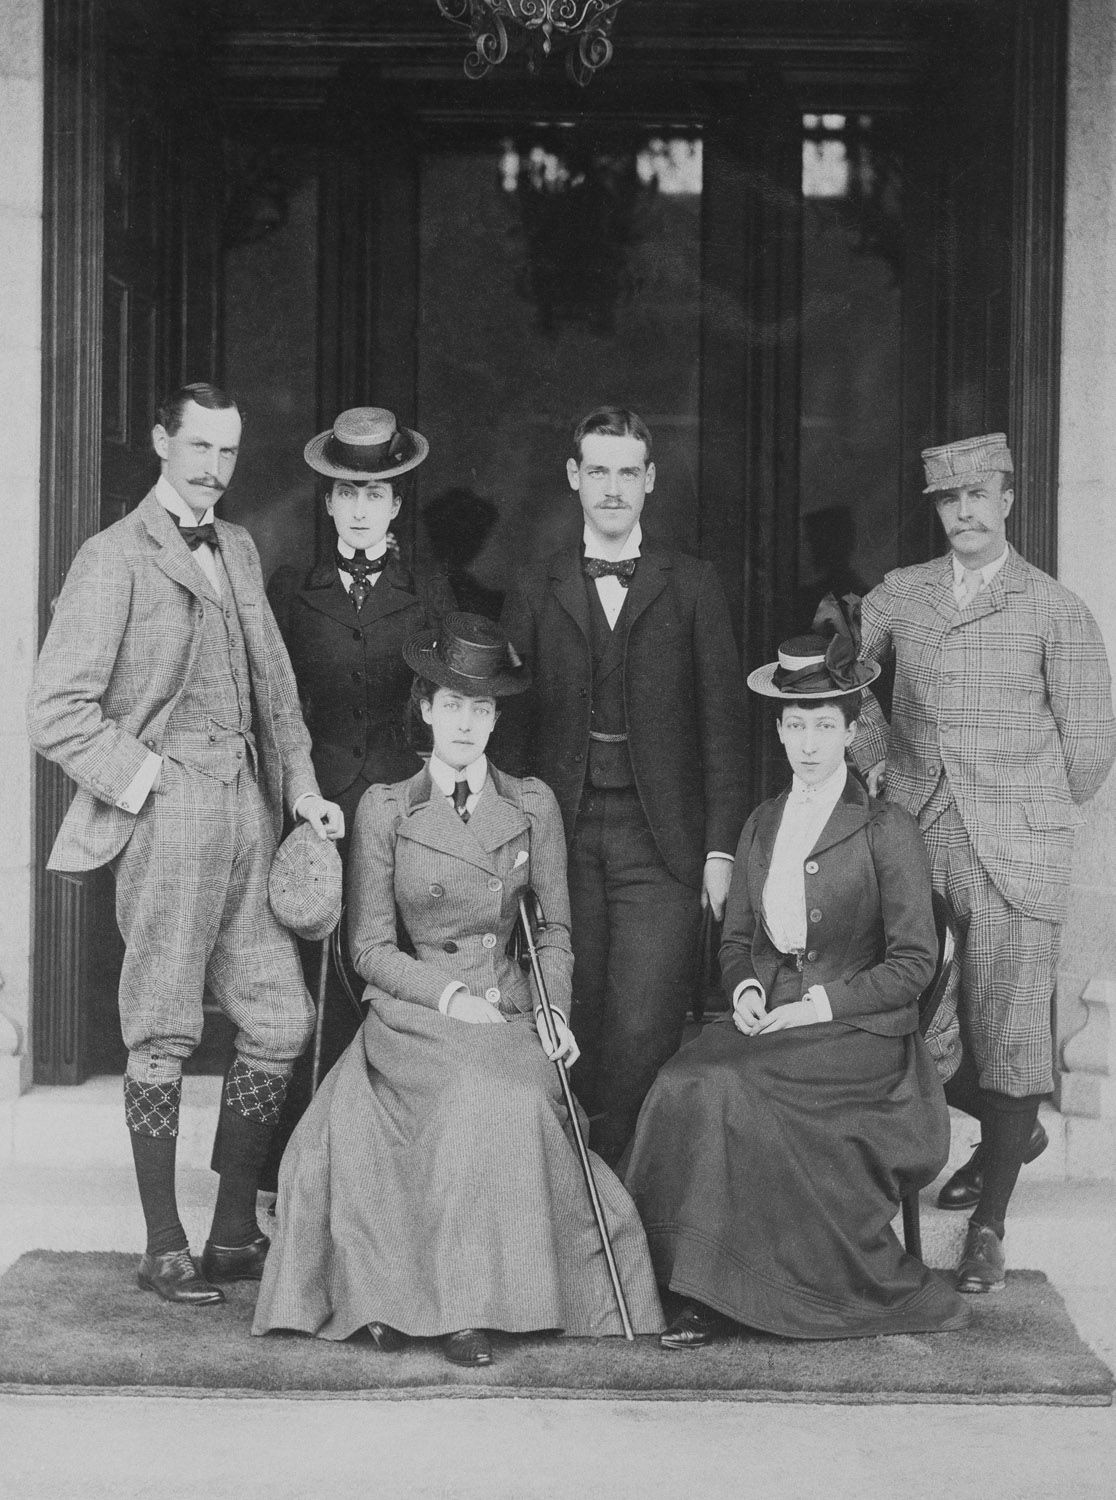 A vacation at Mar Lodge with Prince Carl of Denmark and his wife Maud; Princess Victoria of Wales; Grand Duke Michael of Russia; Princess Louise and her husband the Duke of Fife. 1898-1899.